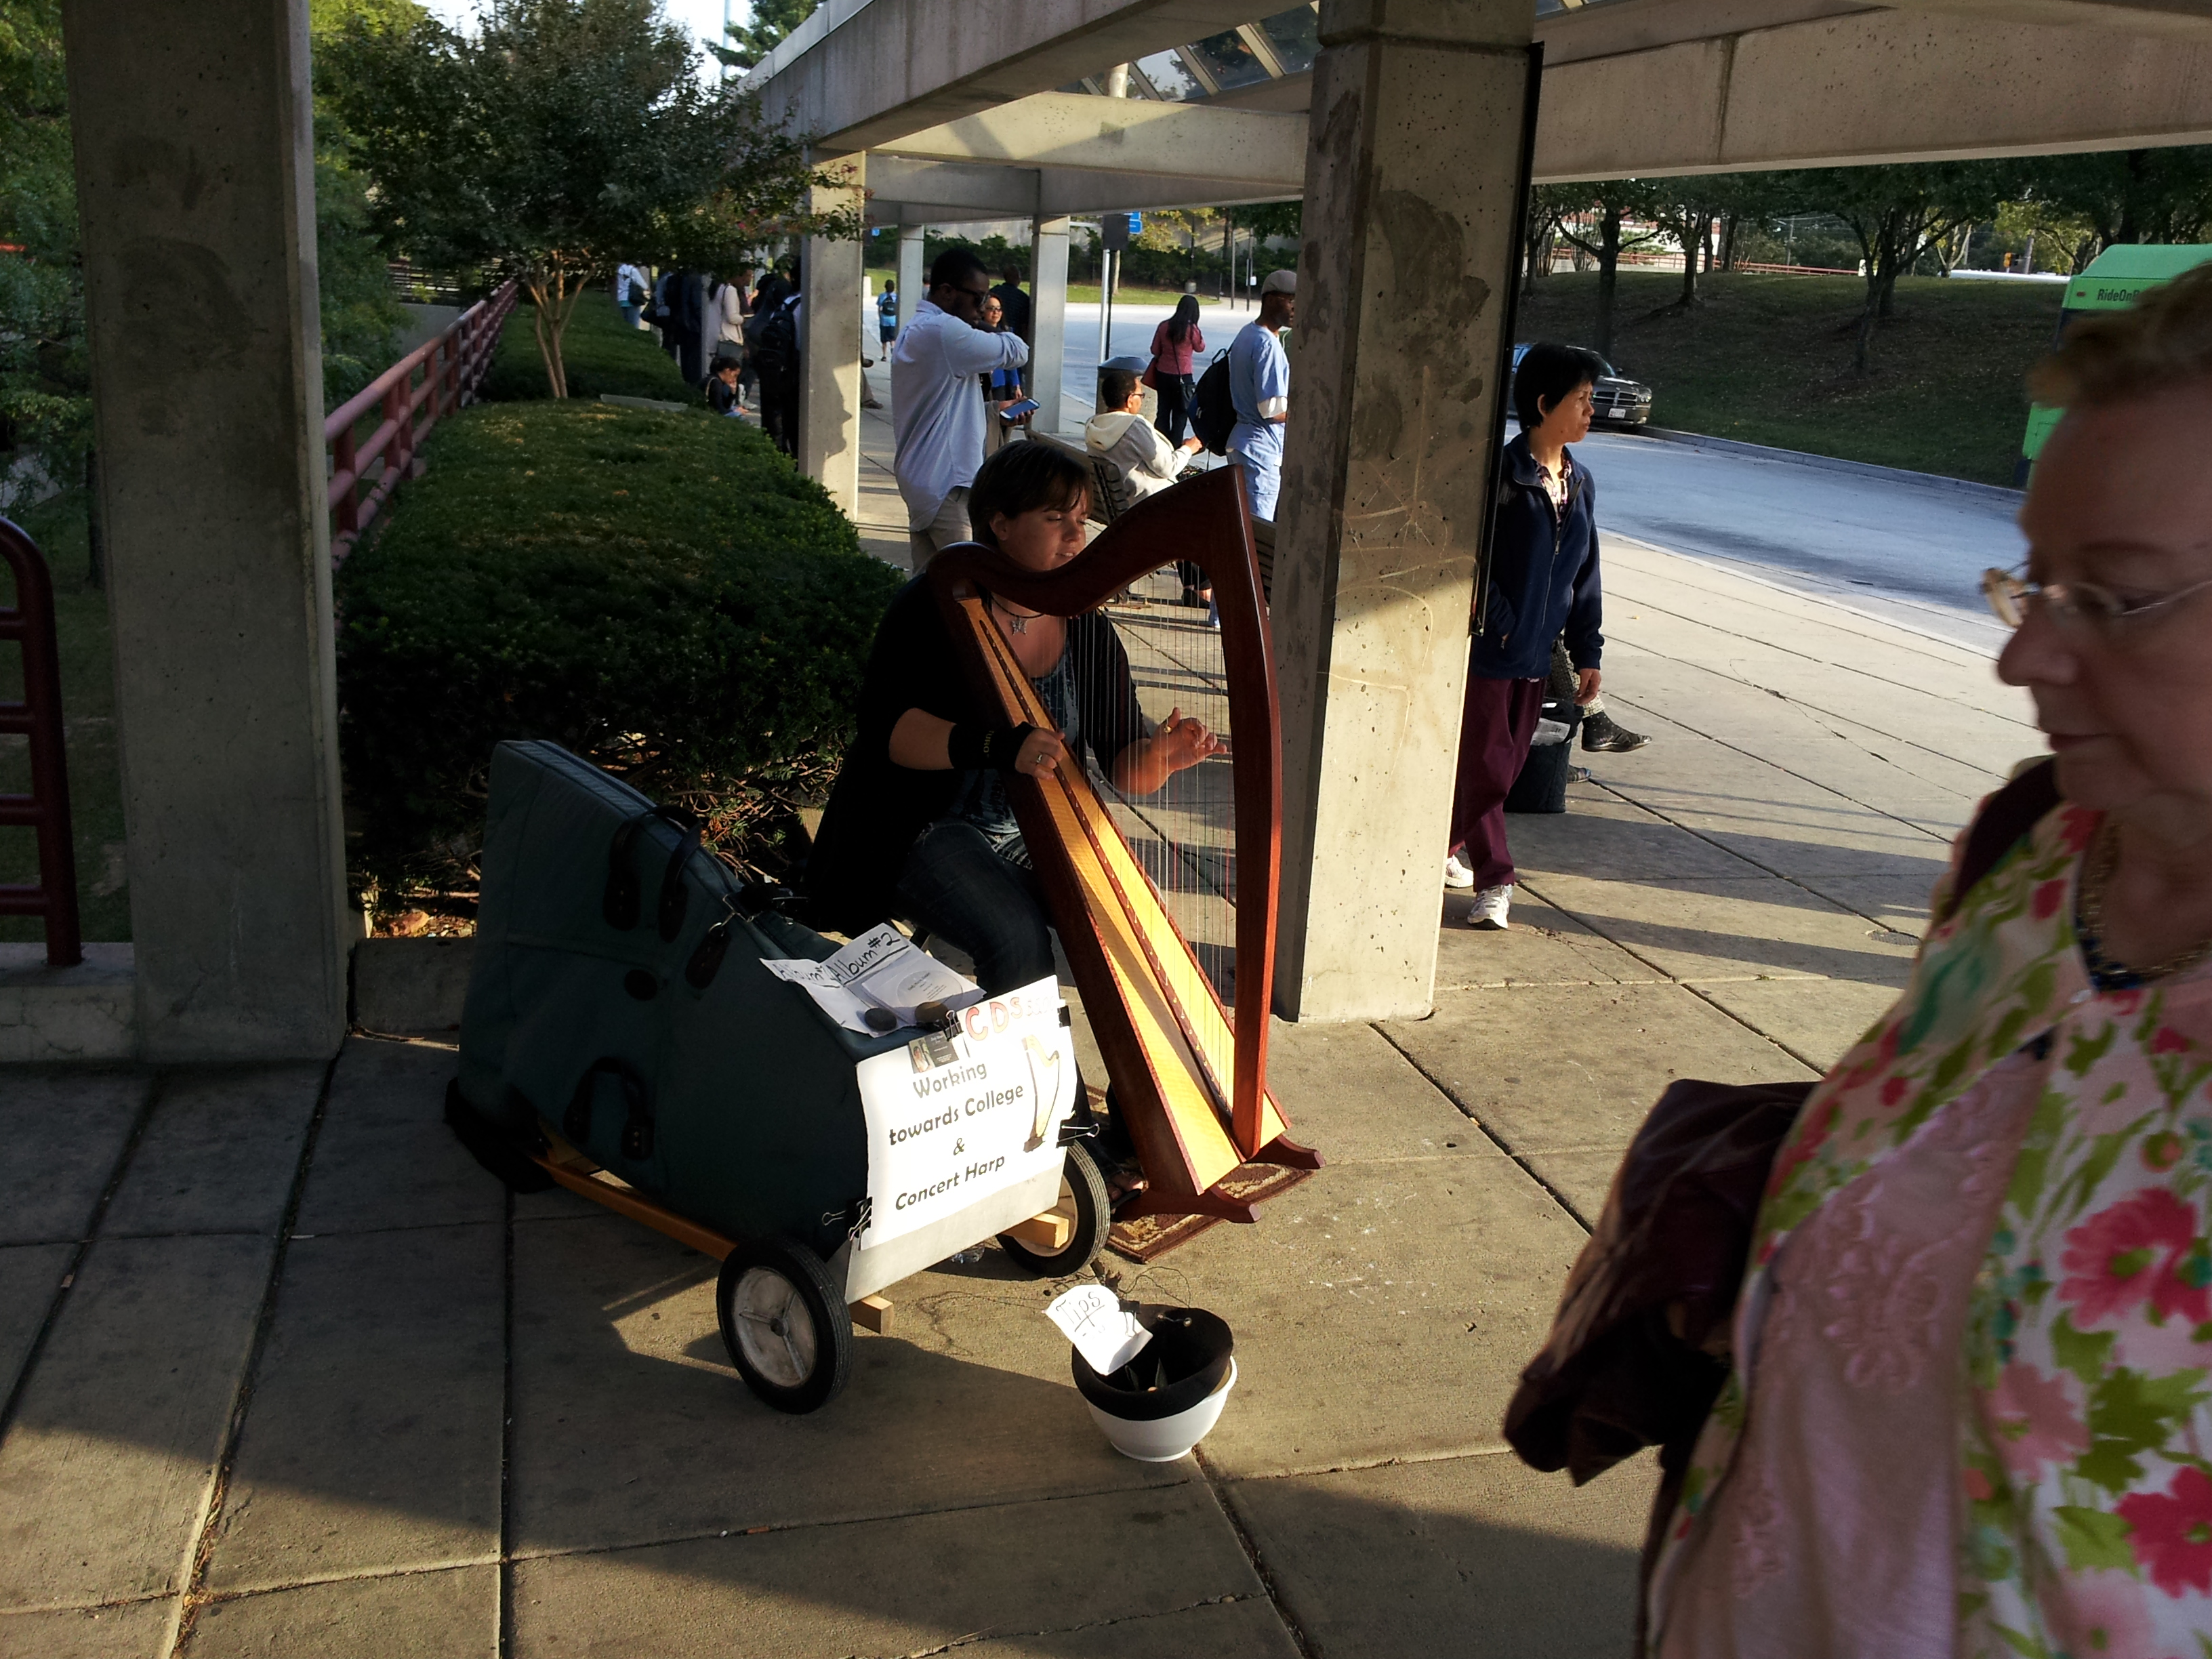 A harpist playing outside of a Metro station.